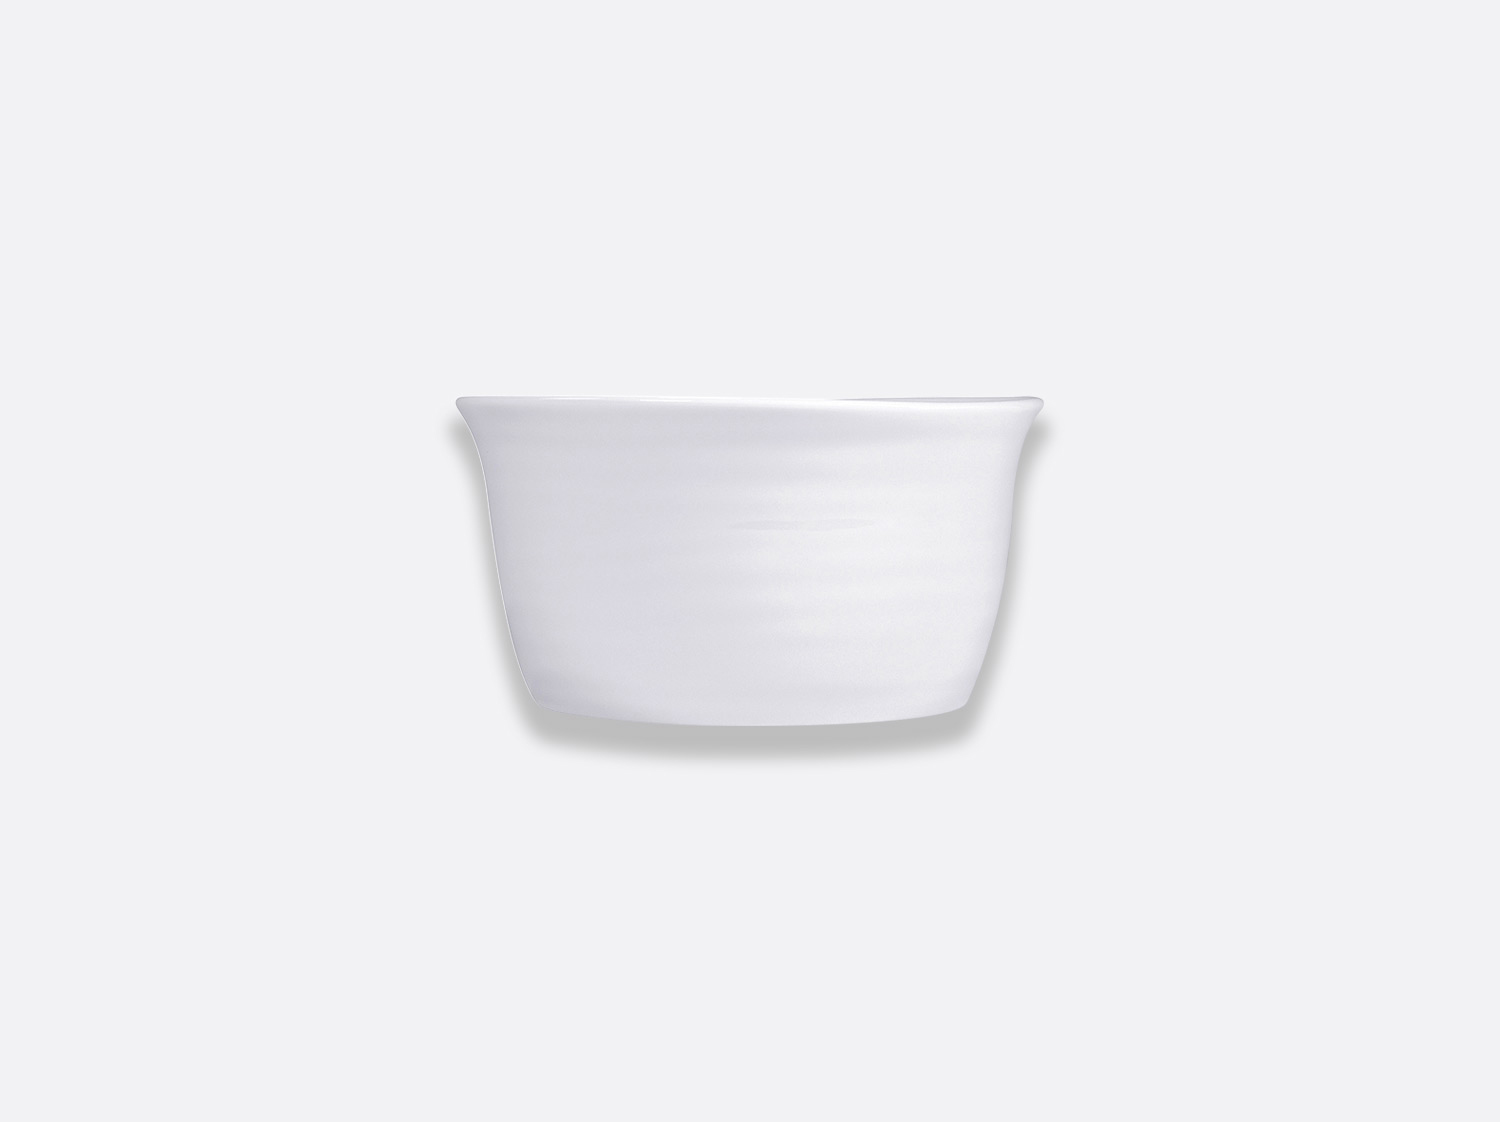 China Bowl 15 oz of the collection Origine | Bernardaud